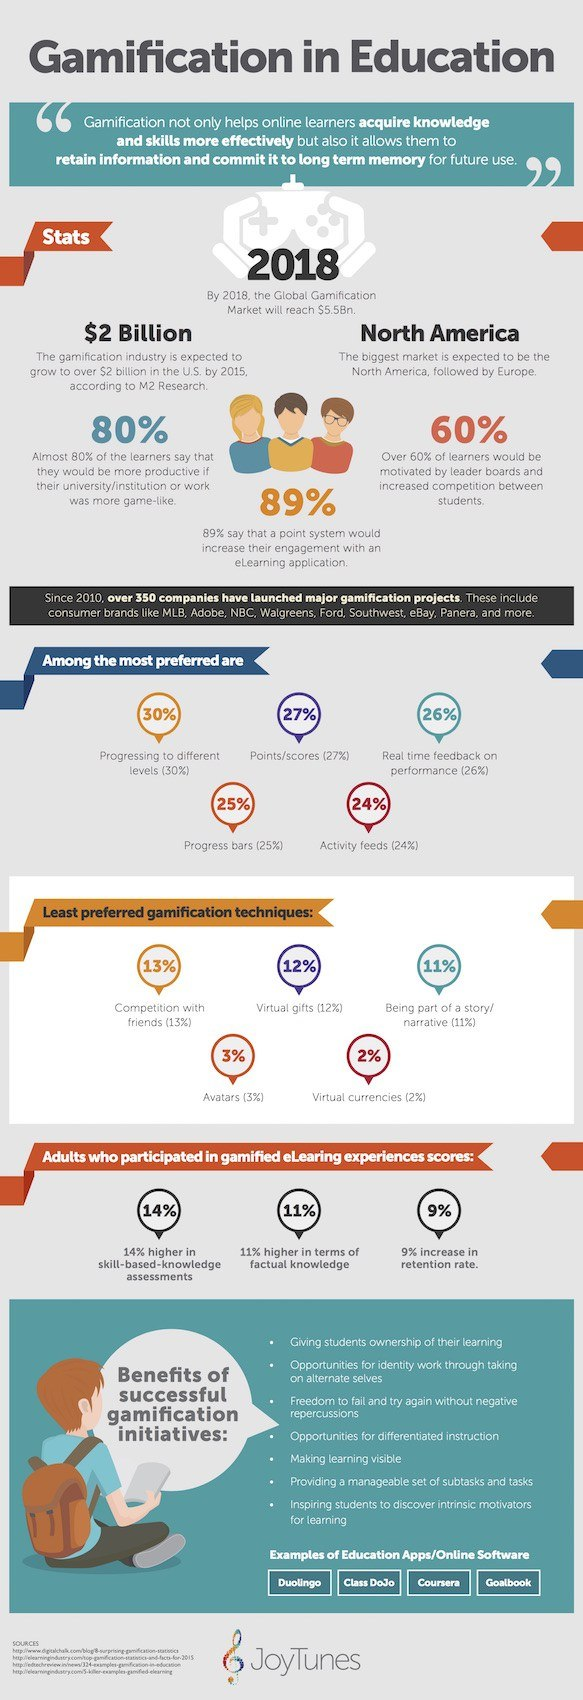 Gamification in Education Stats - LearnDash